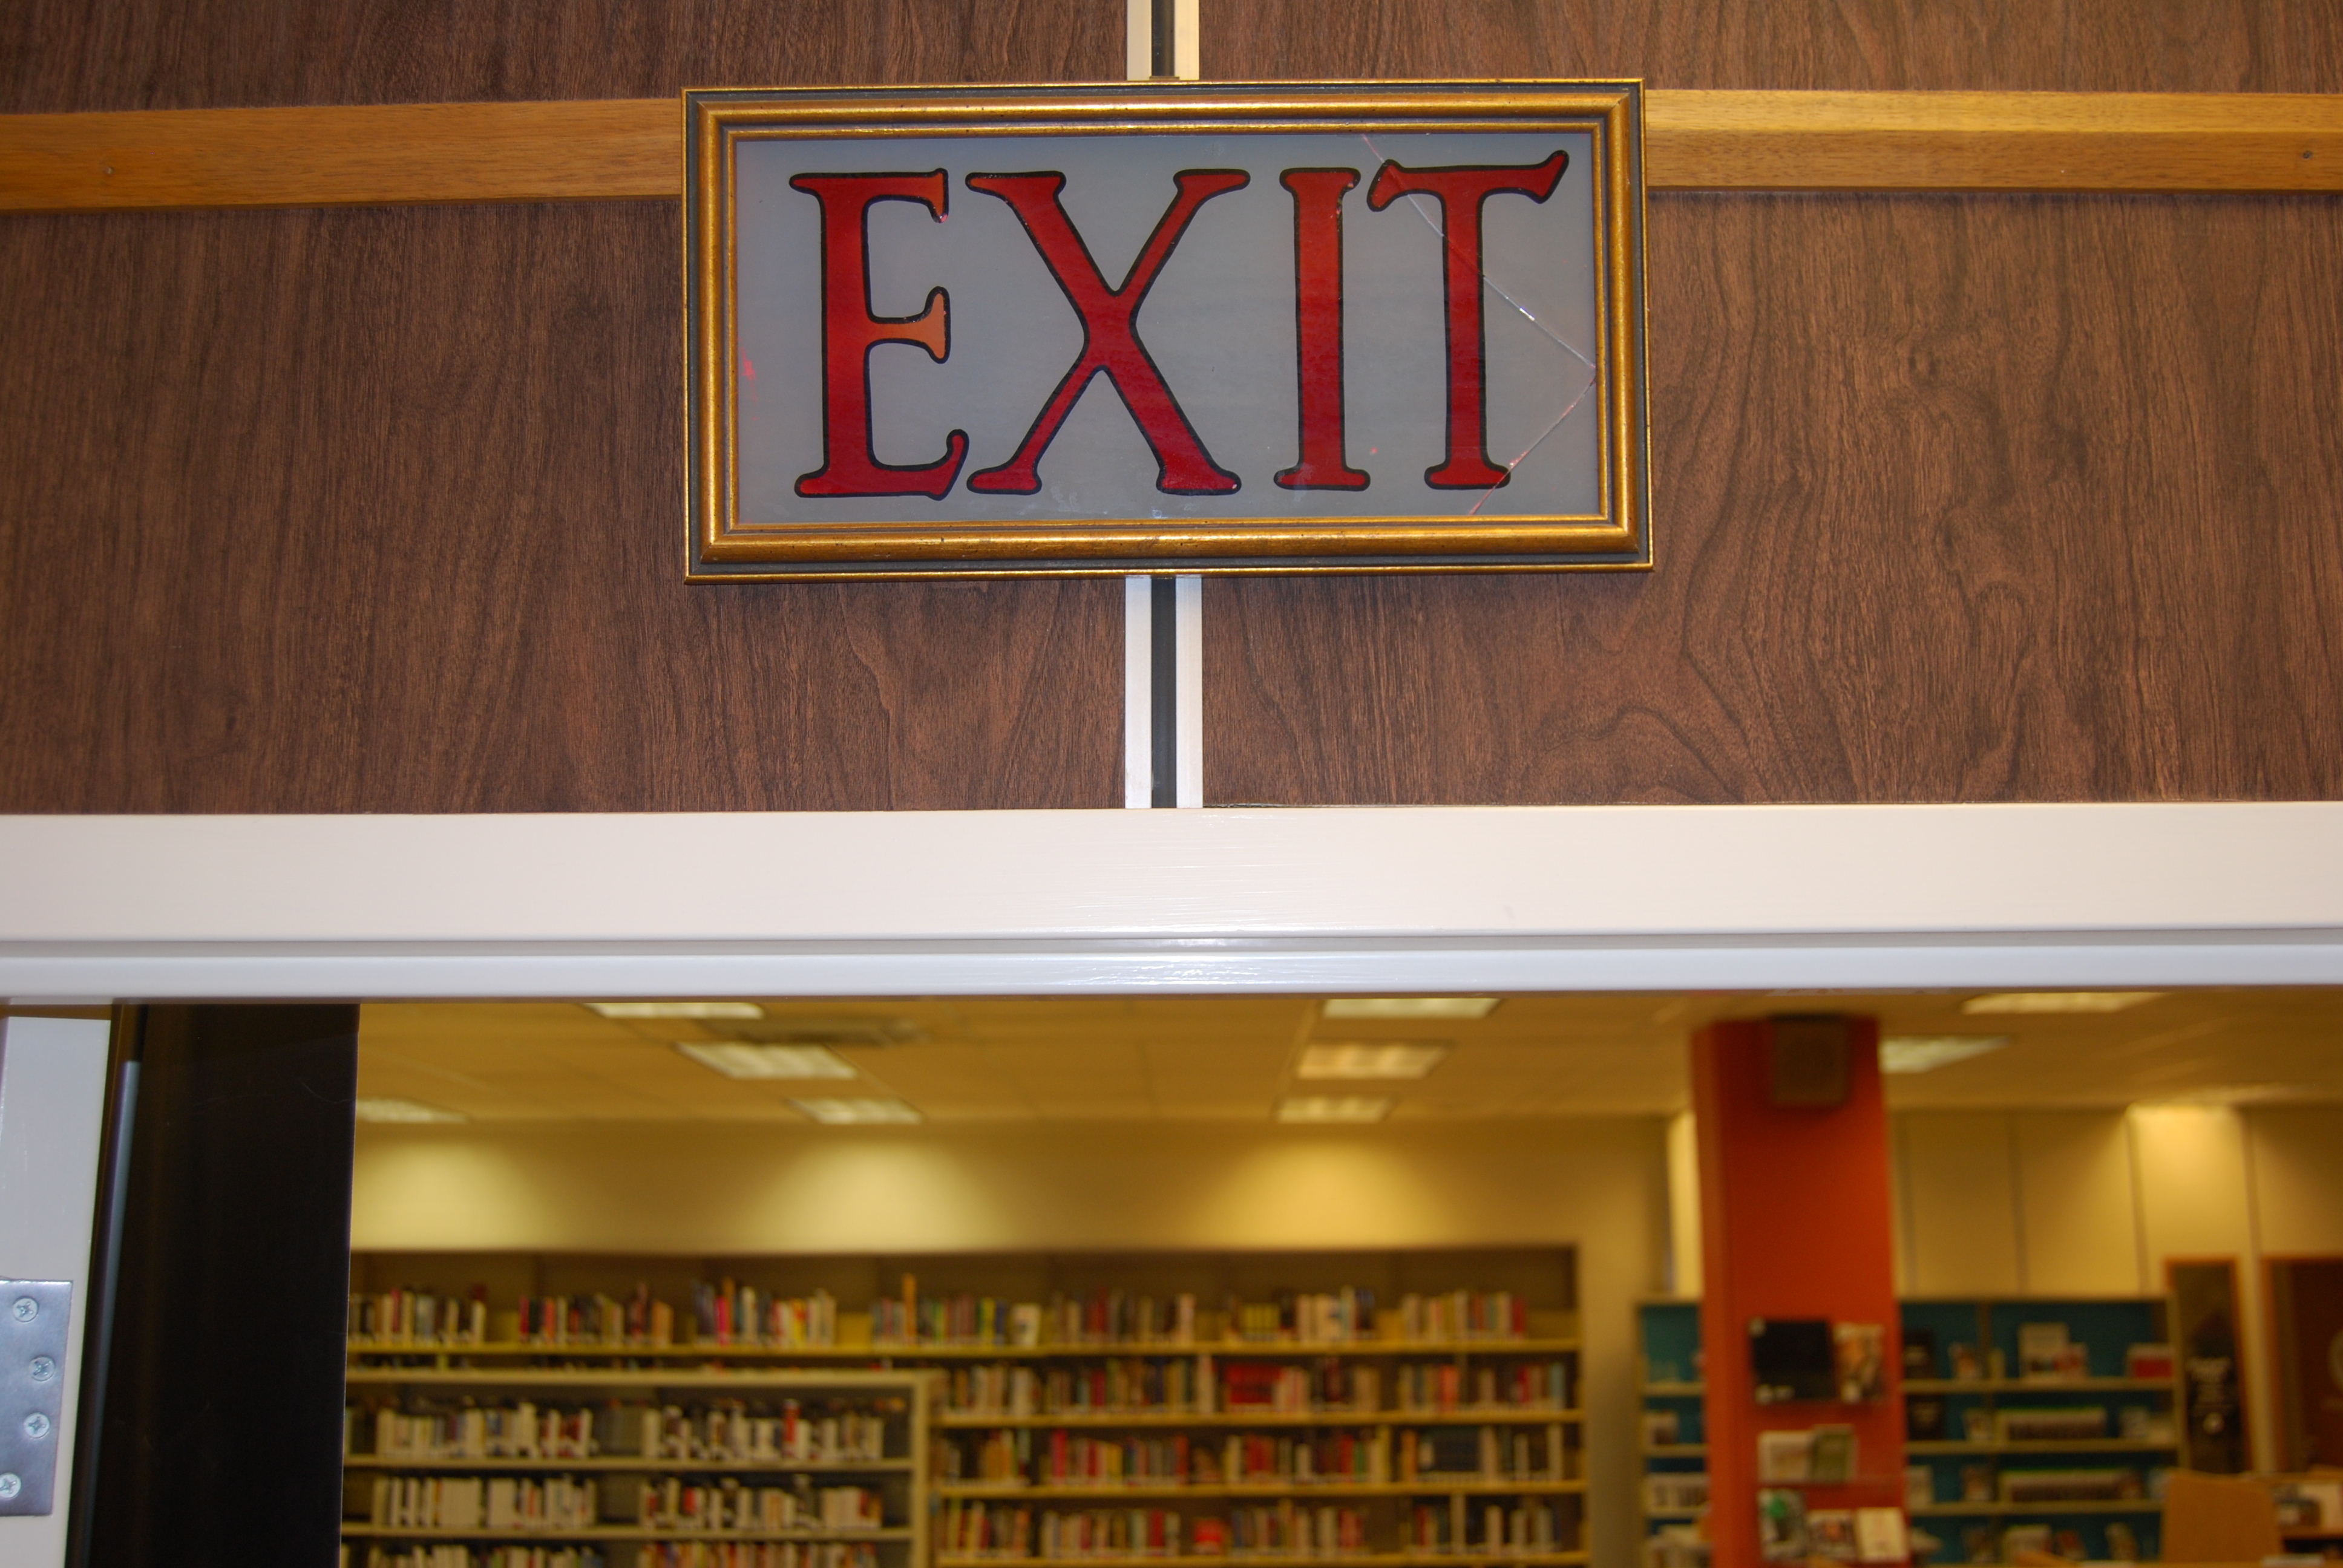 The local history room at the Saskatoon Public Library has this sign from the Capitol. (Guy Quenneville/CBC)